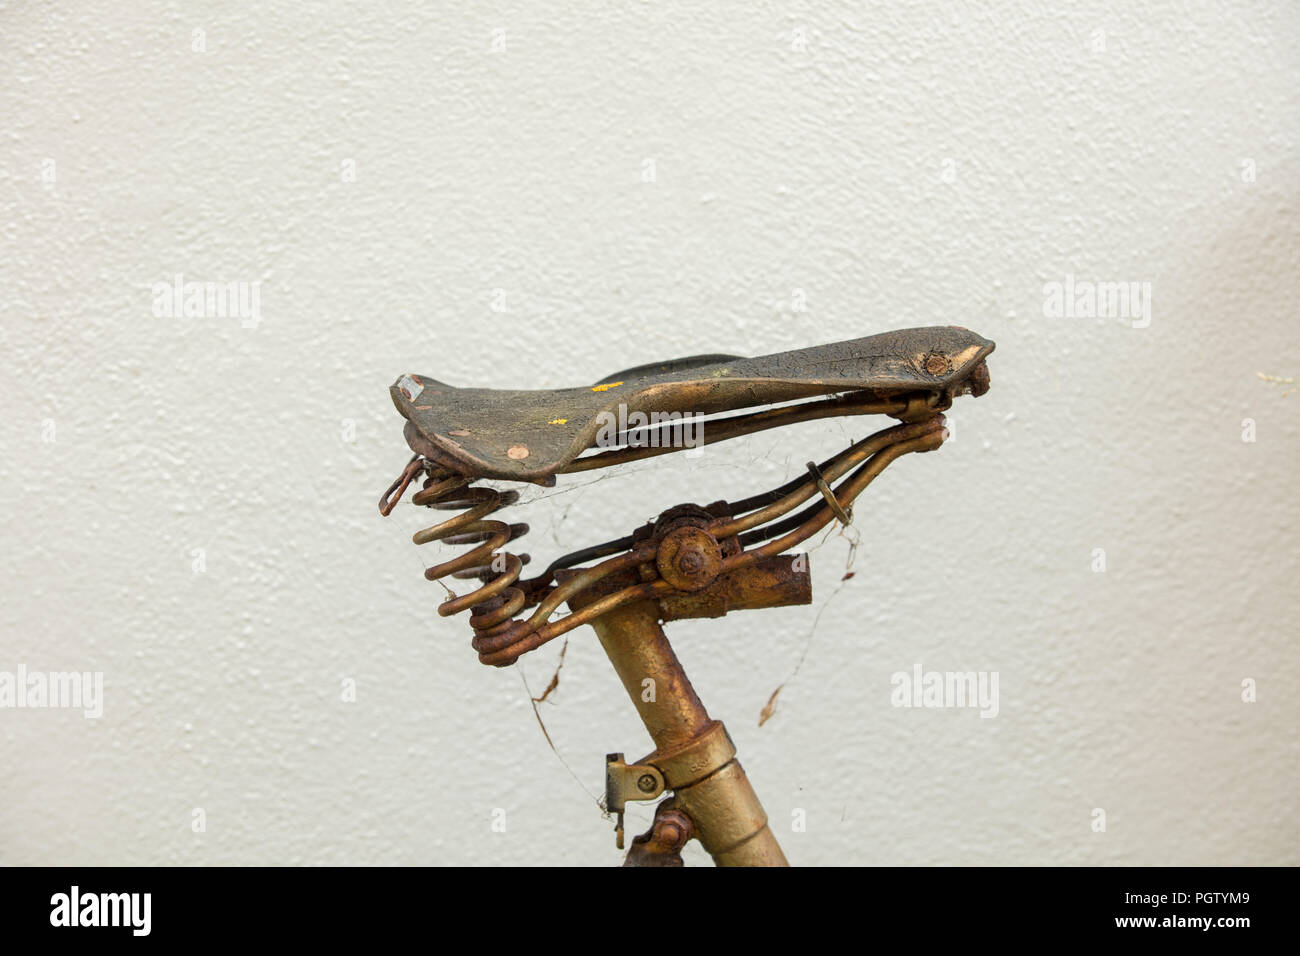 Golden but rusty bicycle saddle creatively used against the white house wall in a tiny small garden in the south coast of England sea town Hastings. - Stock Image